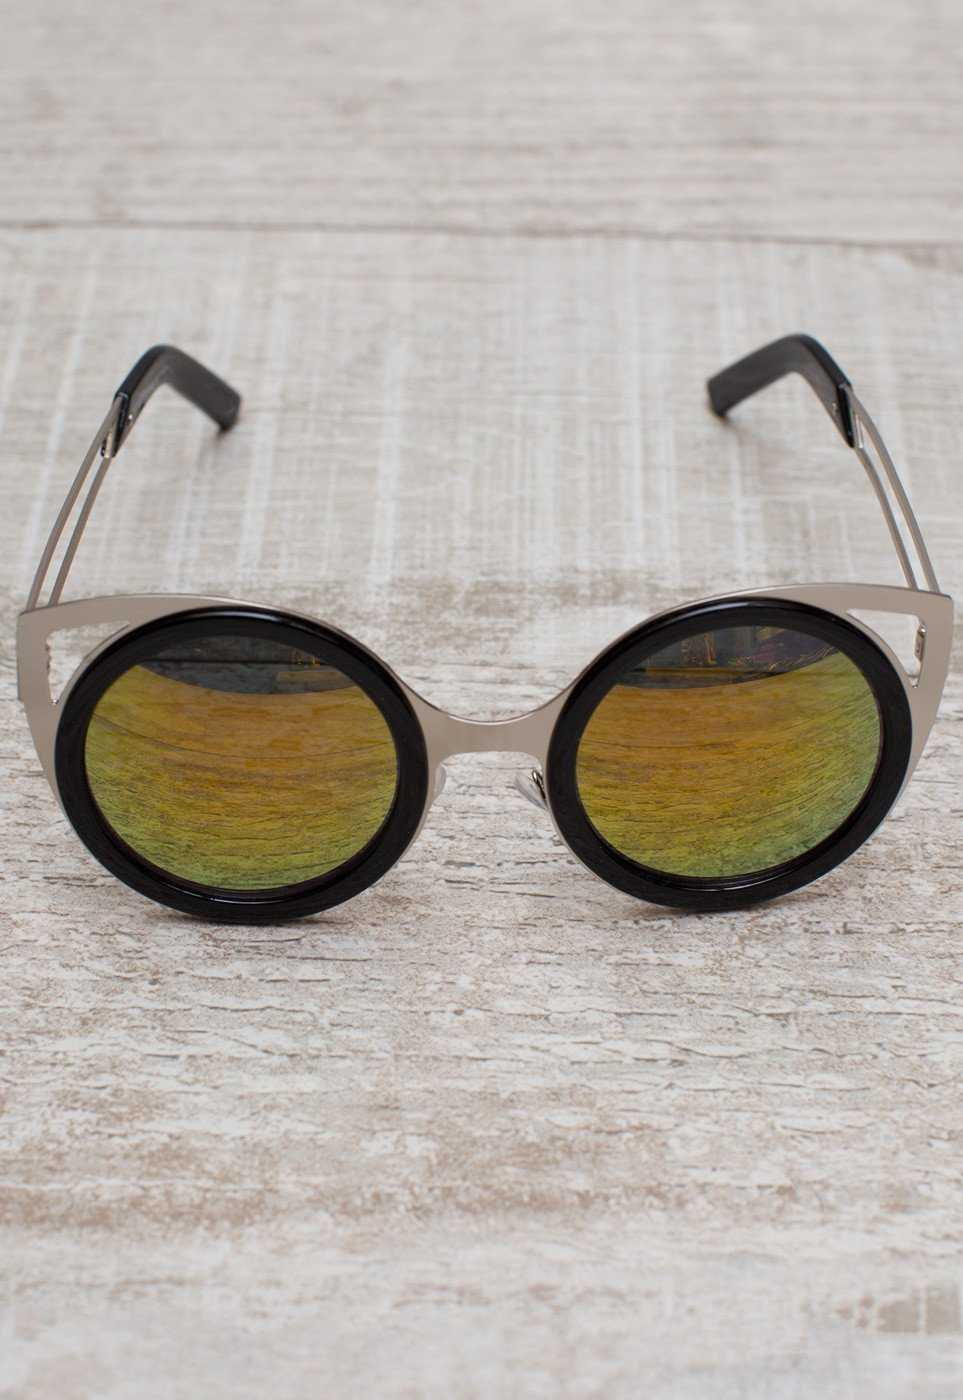 ef3a2847f accessories-rin-round-sunglasses-green-1_1200x.jpg?v=1536371646